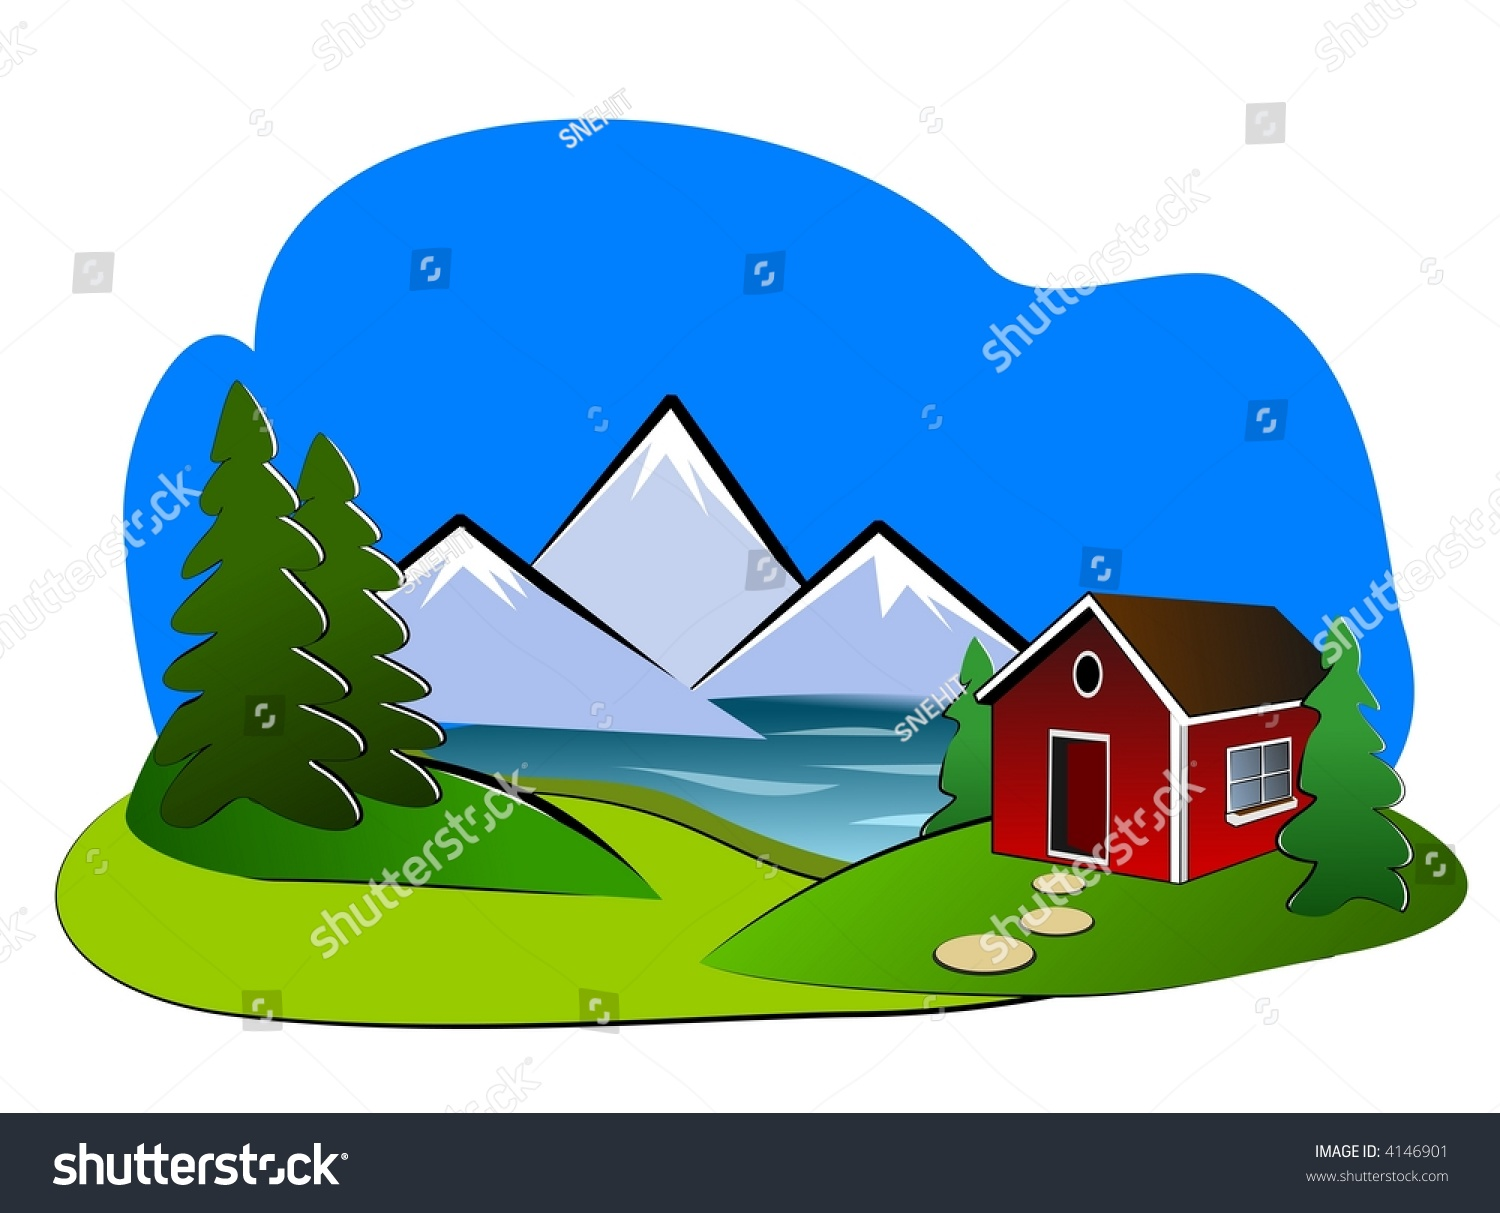 Landscape Clipart Showing Small Cottage At Lake Shore